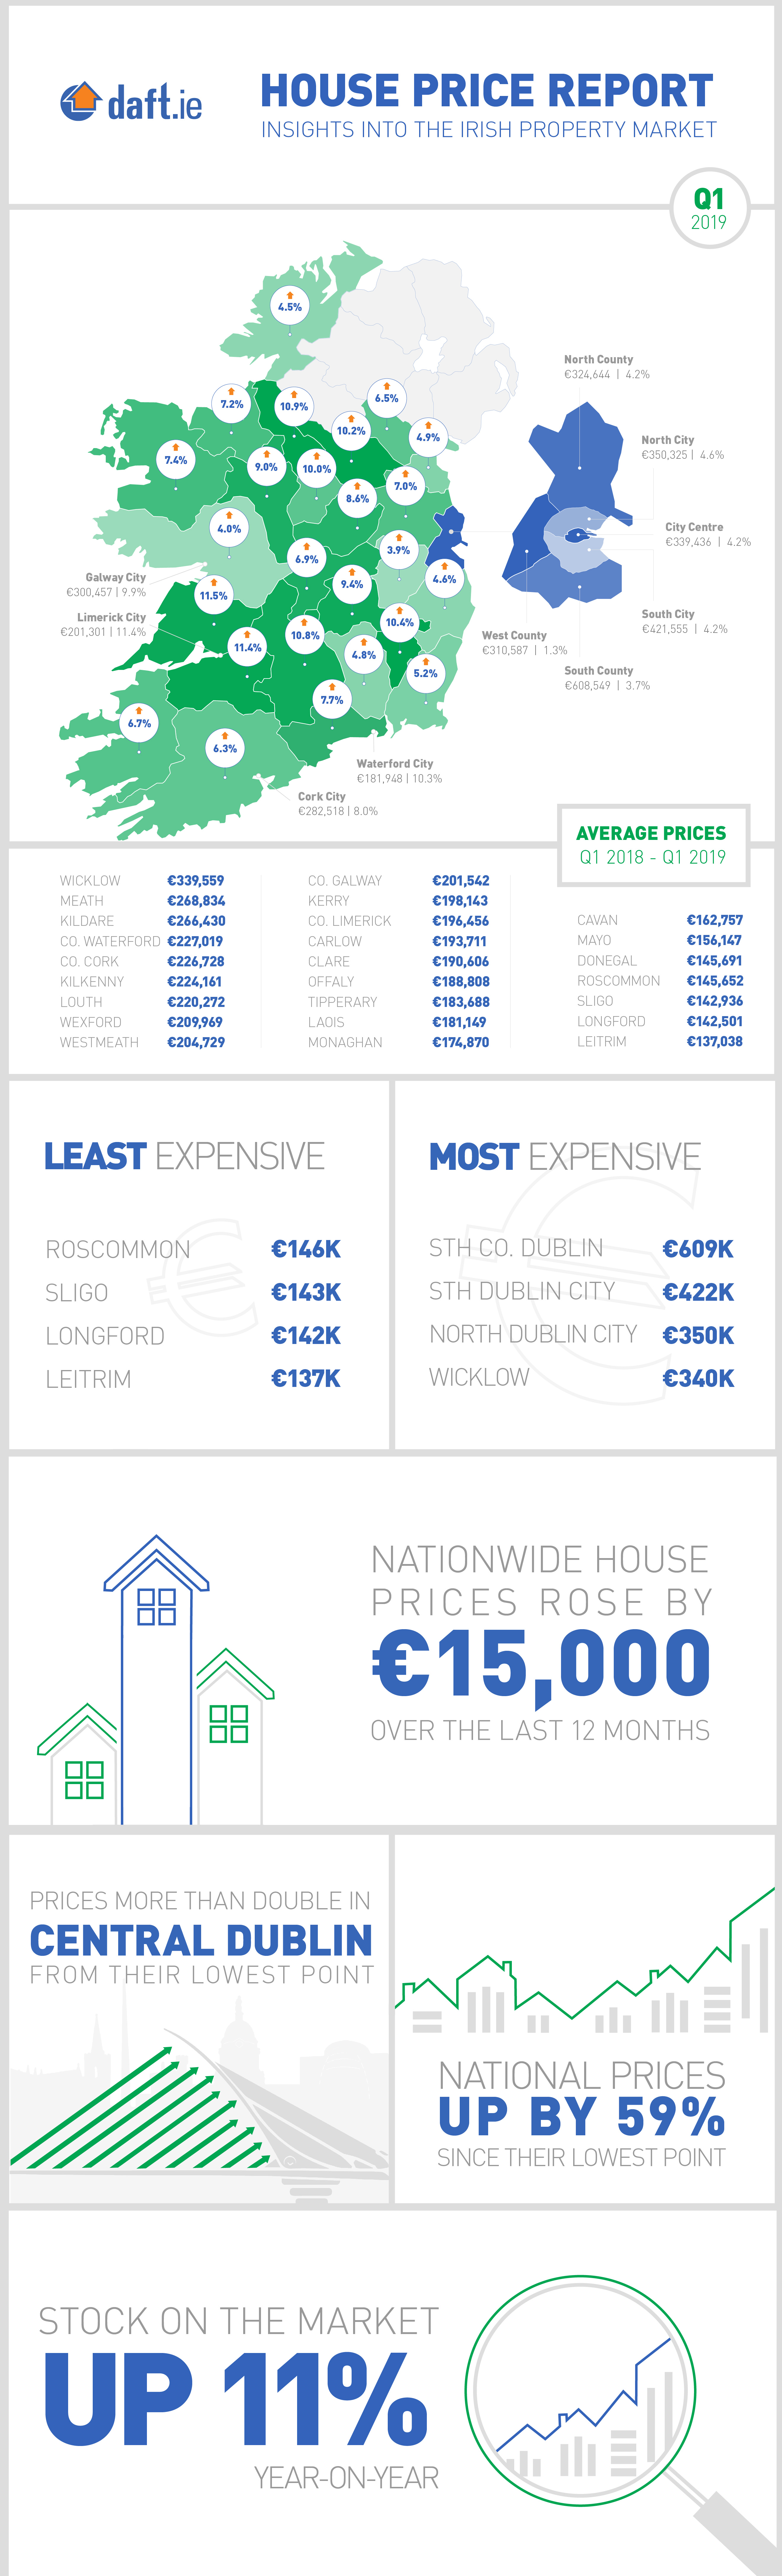 Daft.ie House Price Report: Q1 2019 Infographic